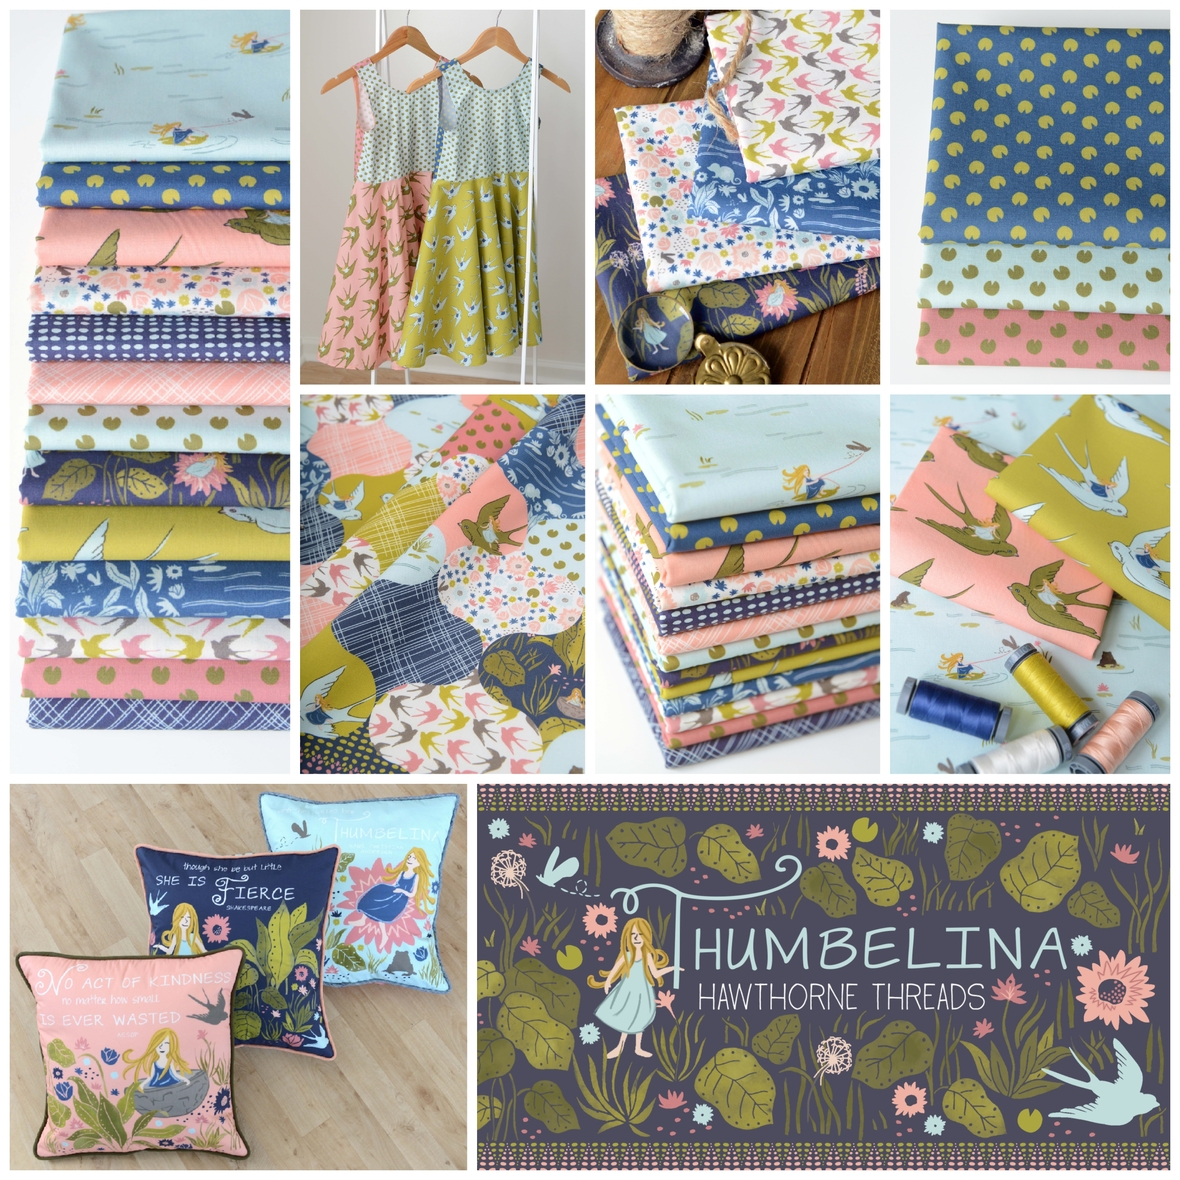 Hawthorne Threads Thumbelina Fabric Poster 2800